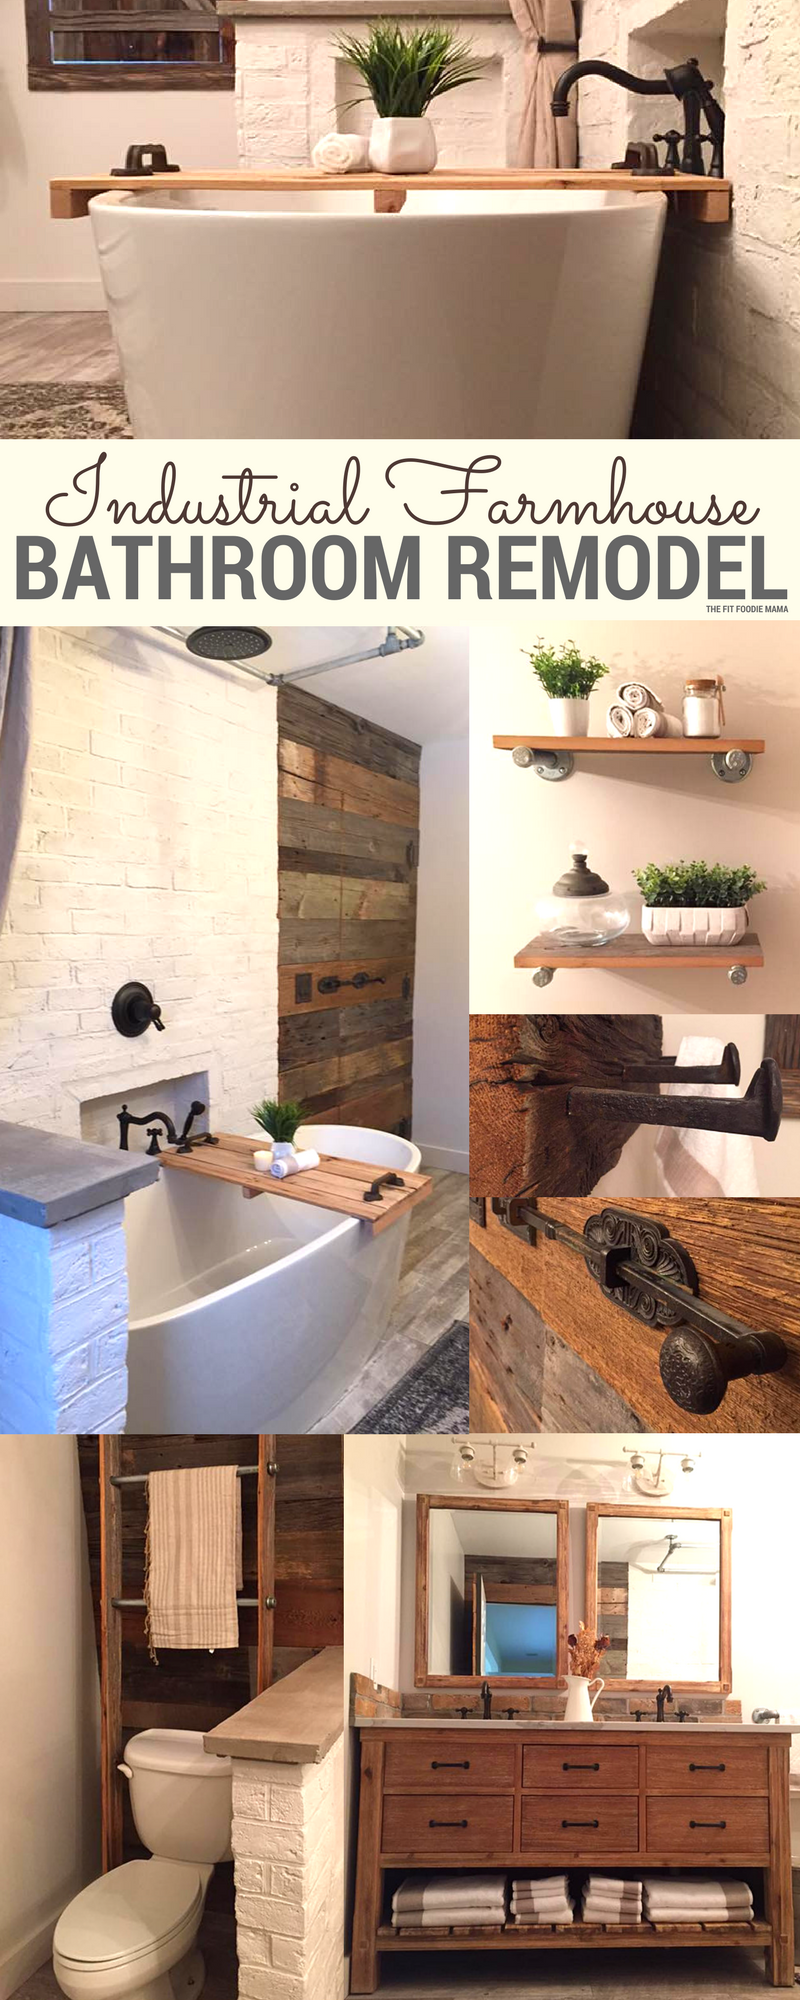 Industrial Farmhouse Bathroom Remodel